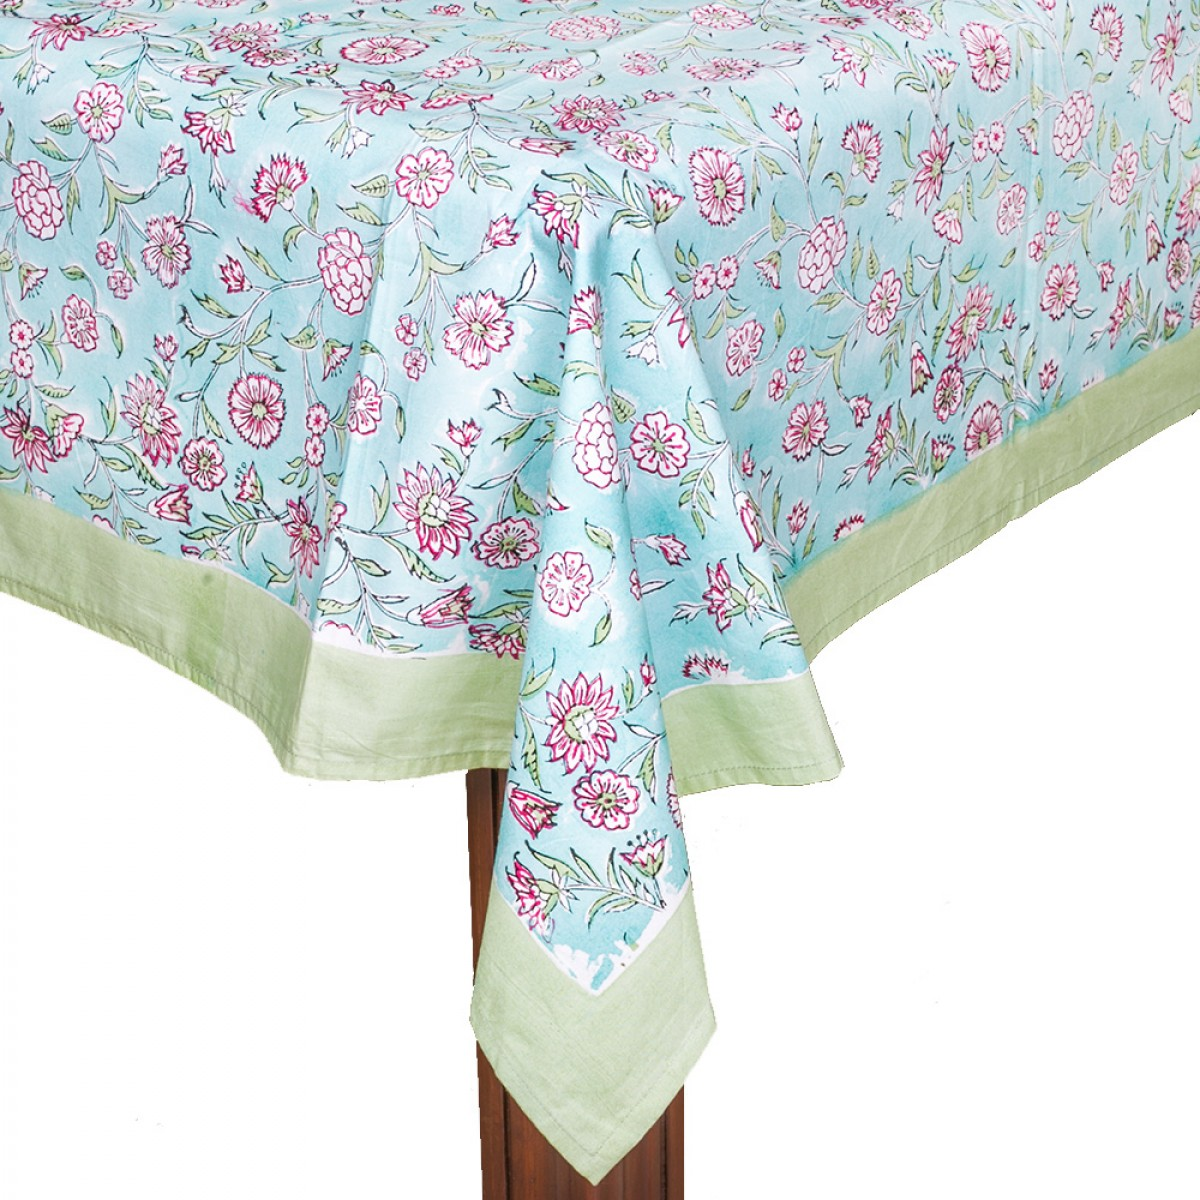 Block Printed Aqua Cotton Table Linen (235cm x 146cm)